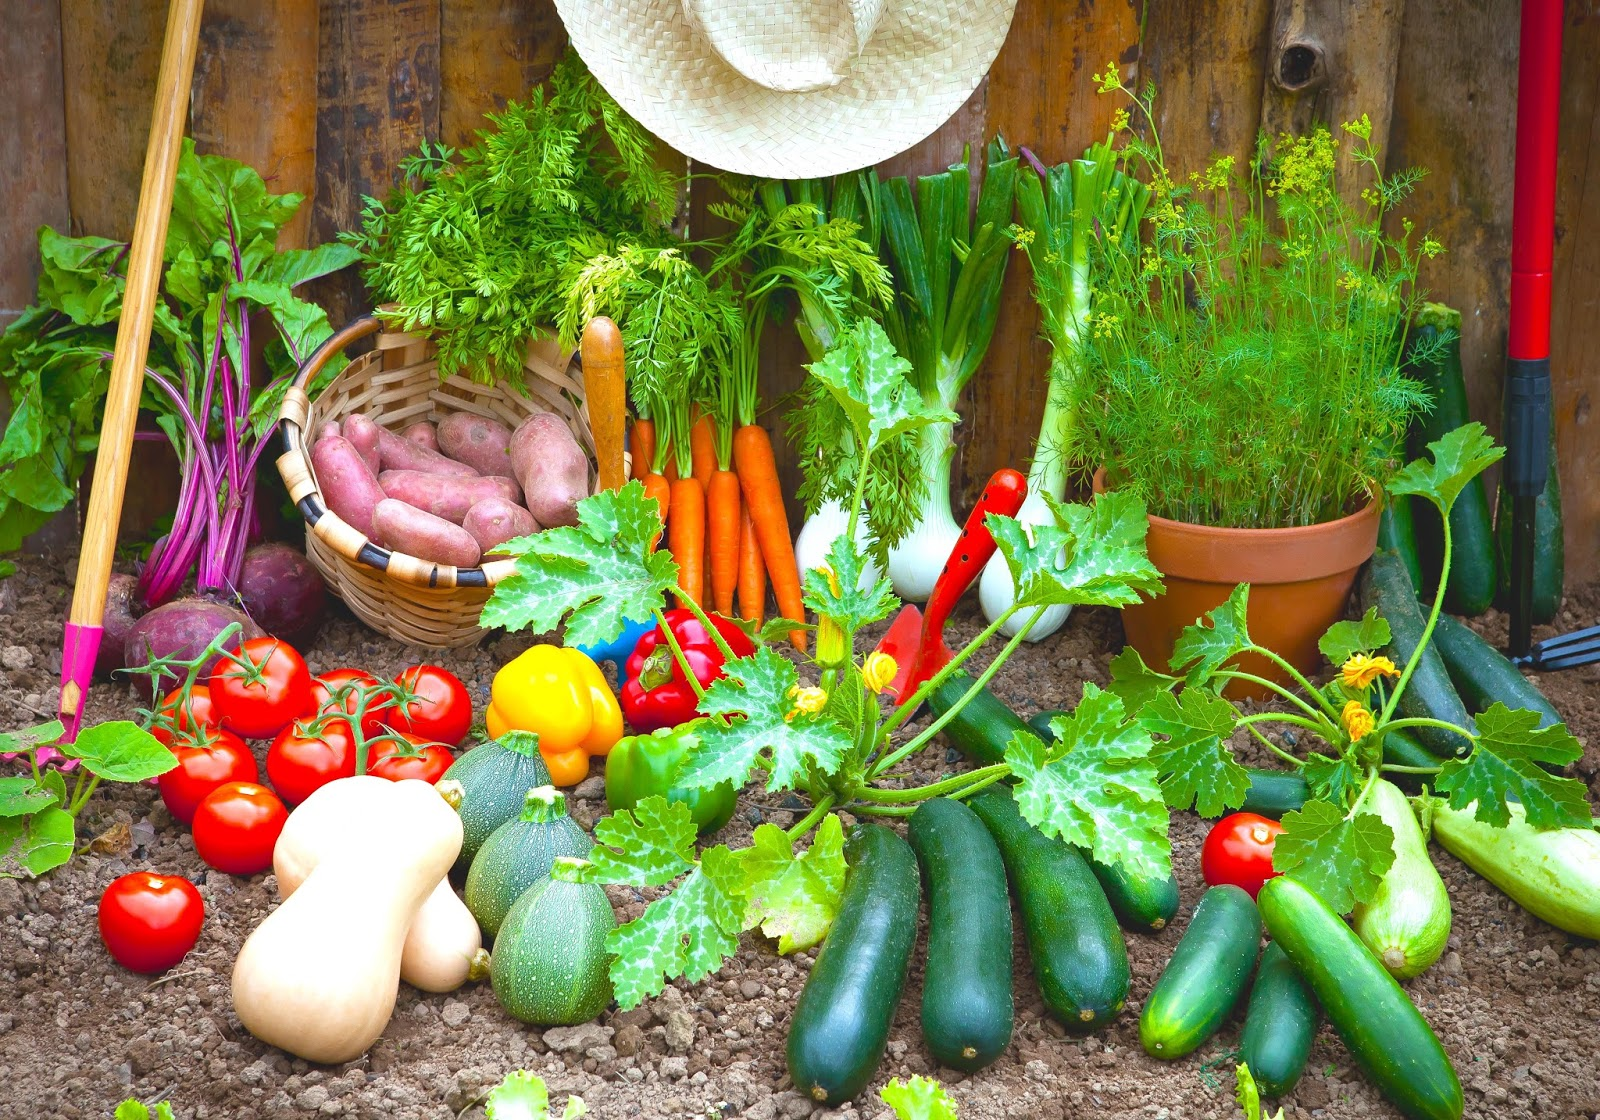 5 Planted Vegetables are Grown at Home